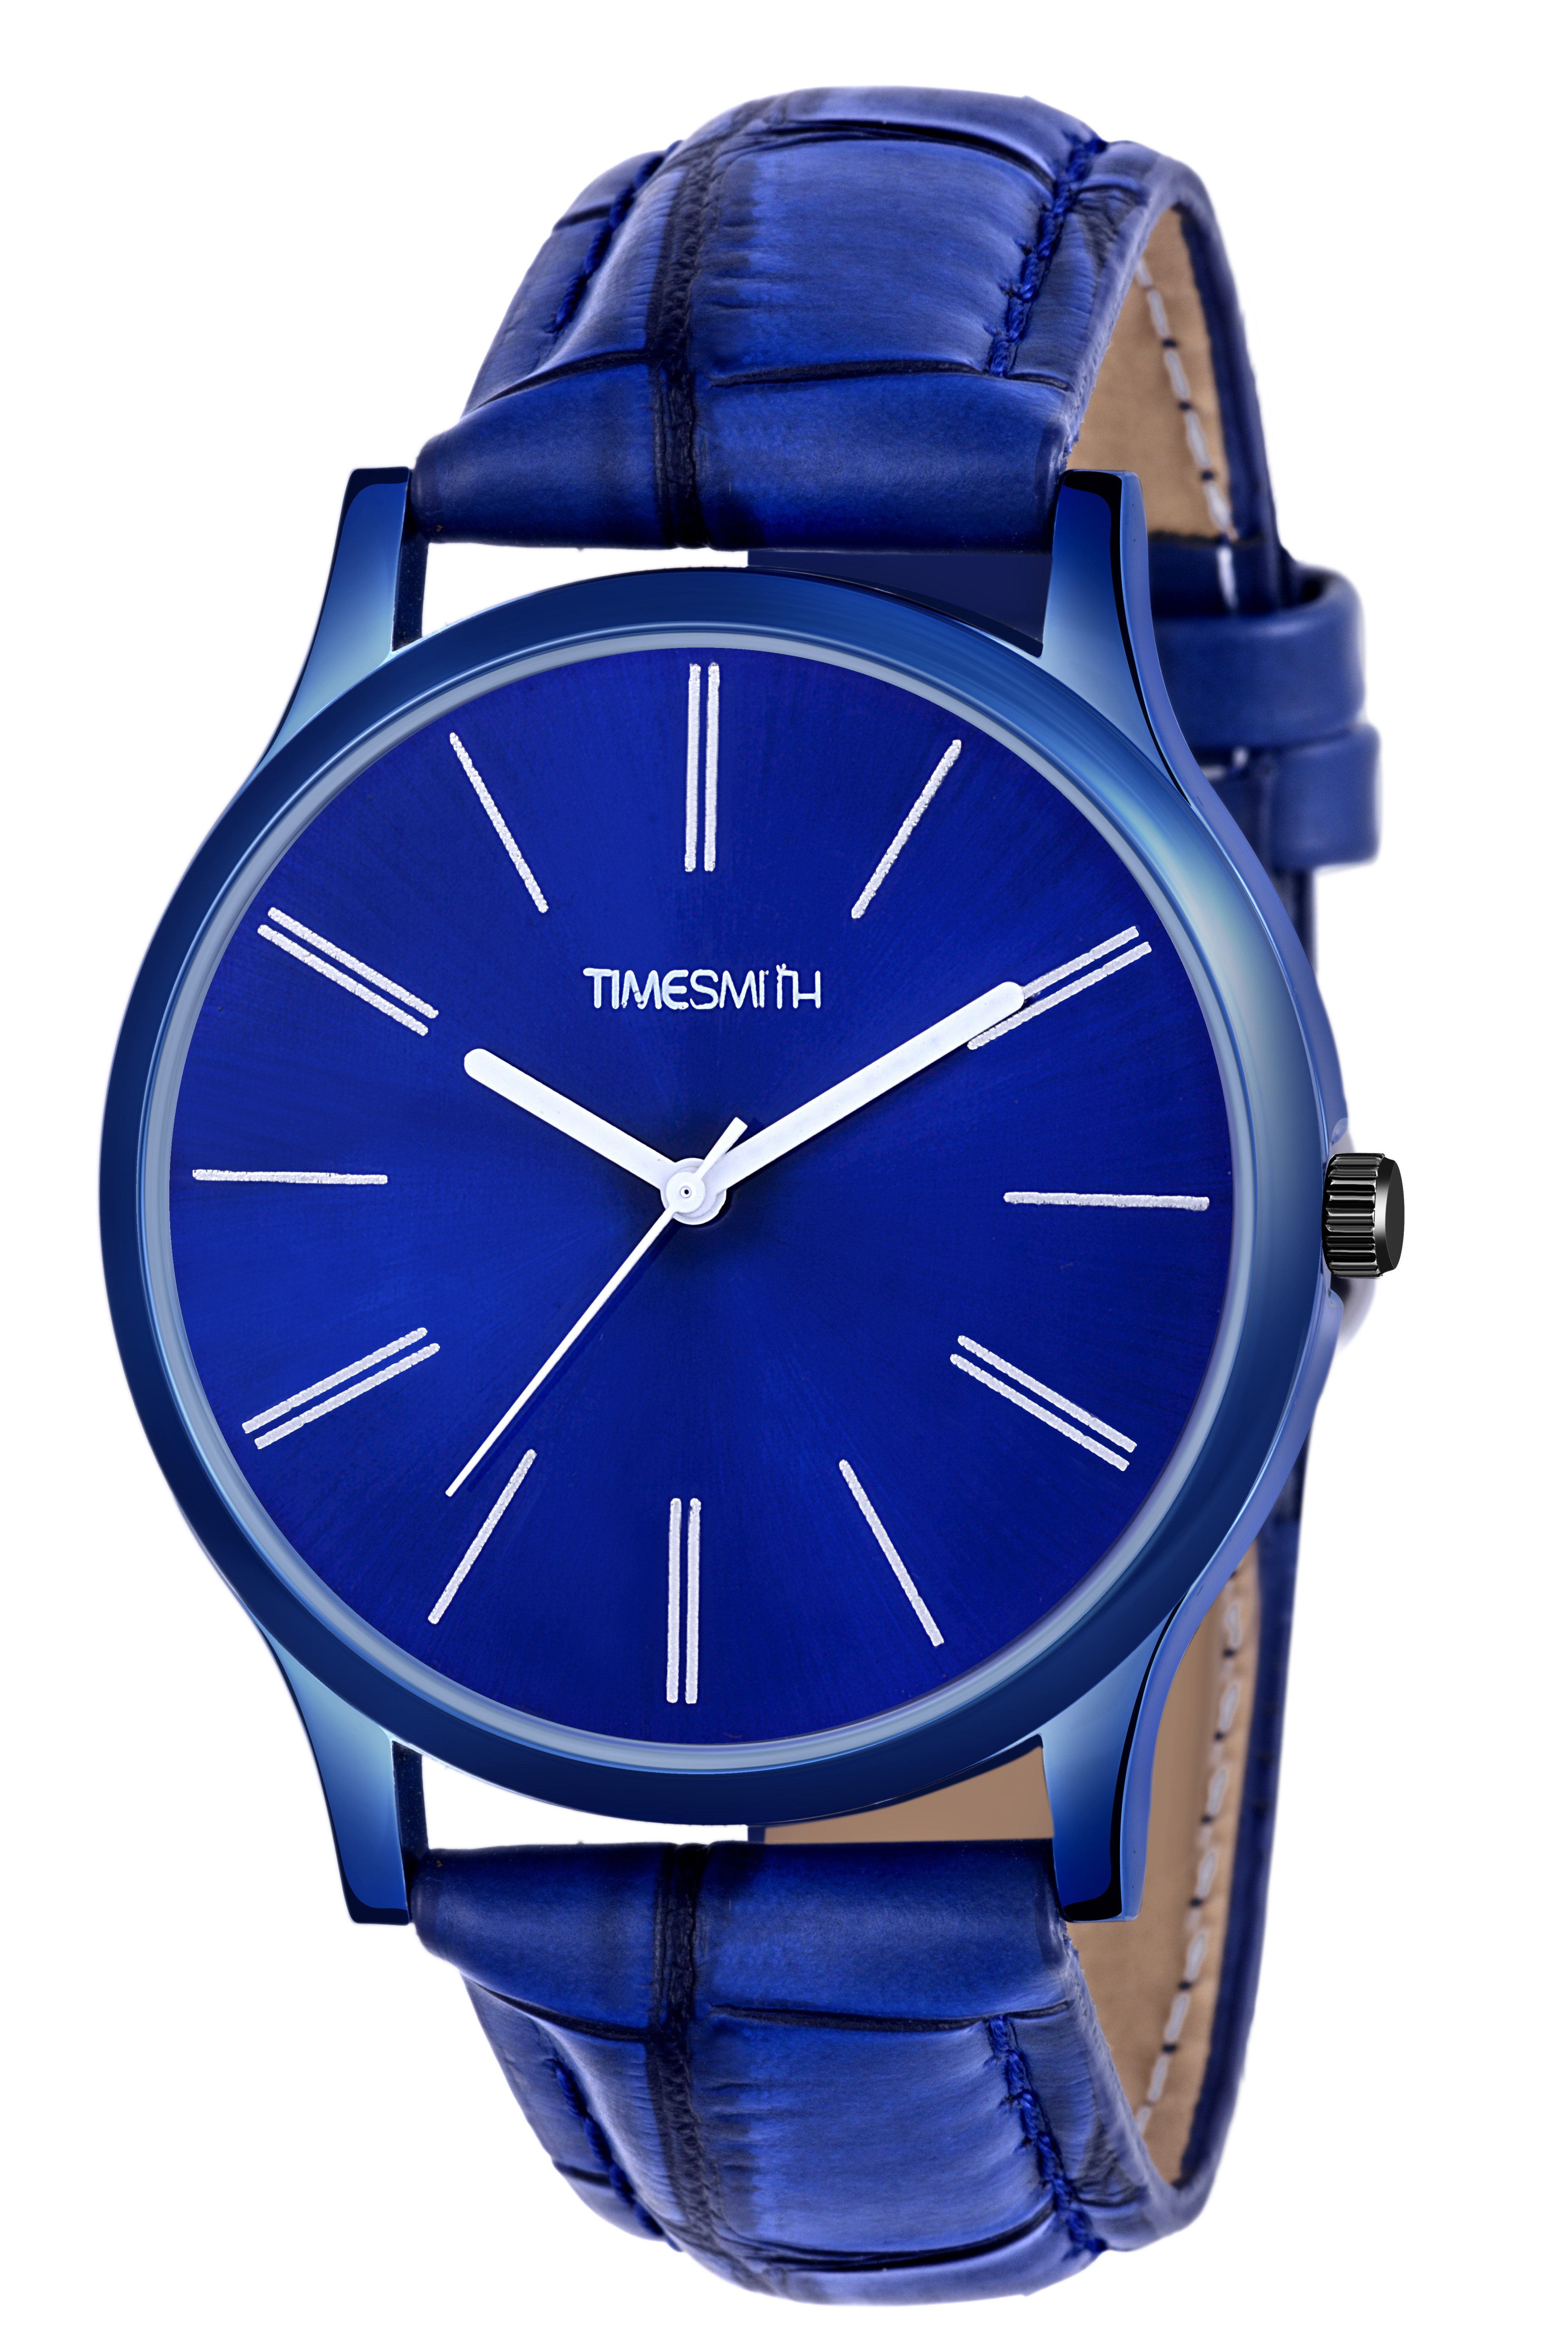 Timesmith | Timesmith Blue Leather Blue Dial Watch For Men CTC-006mtn